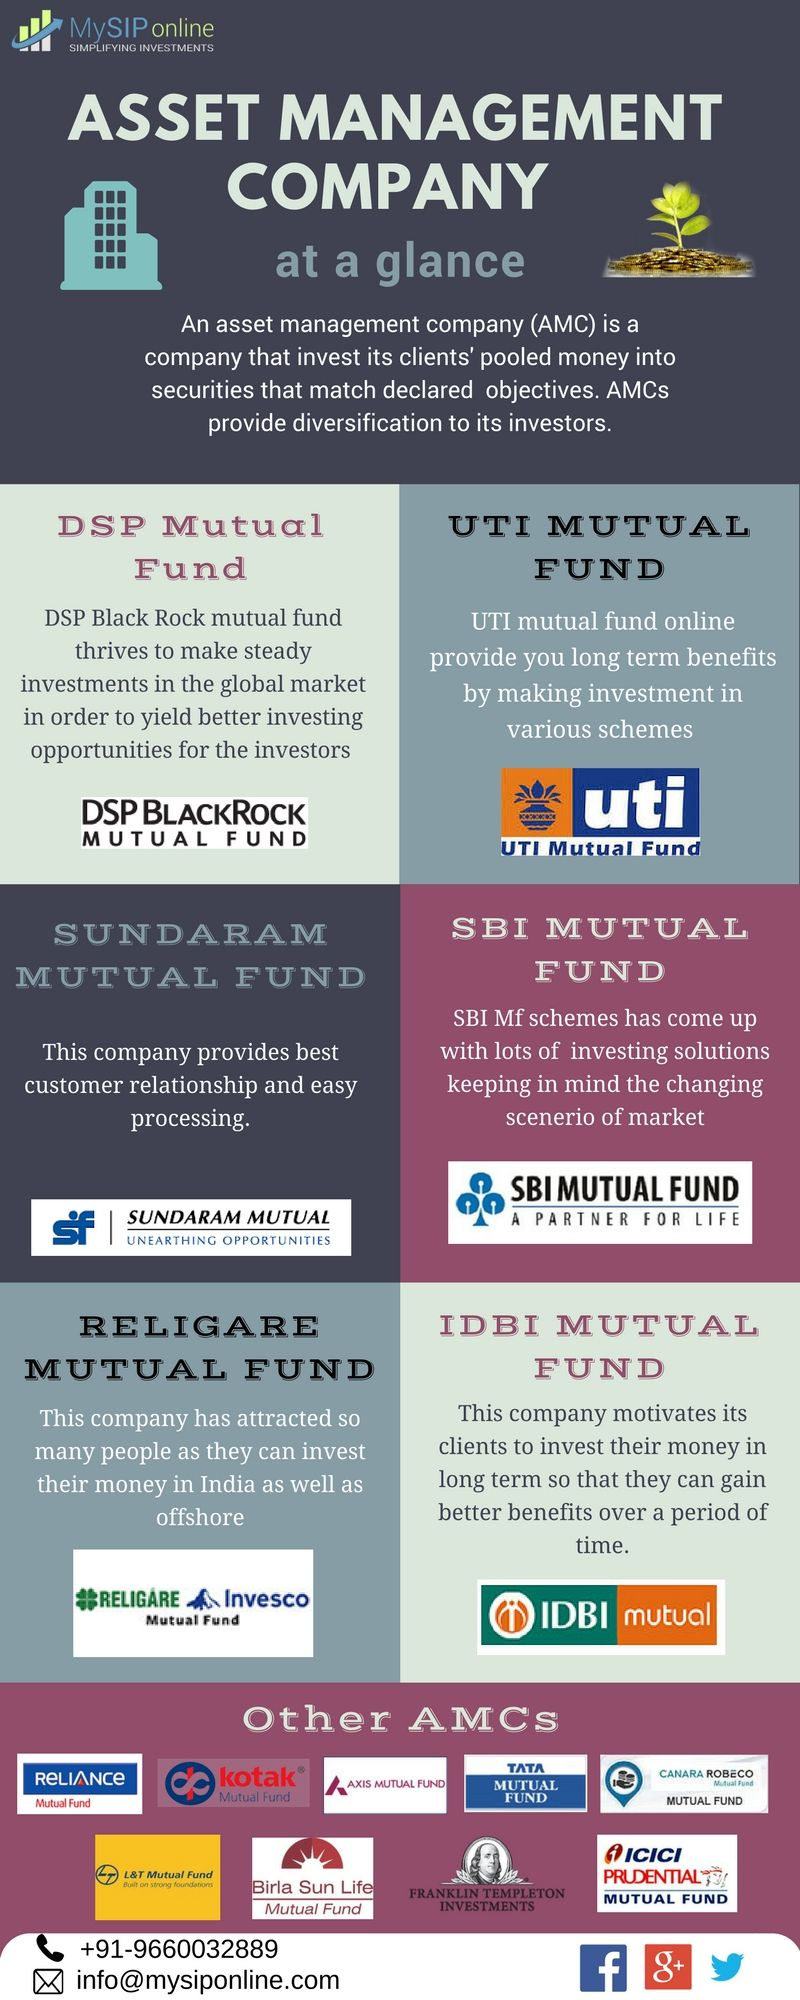 Have a look at all asset management companies so that you